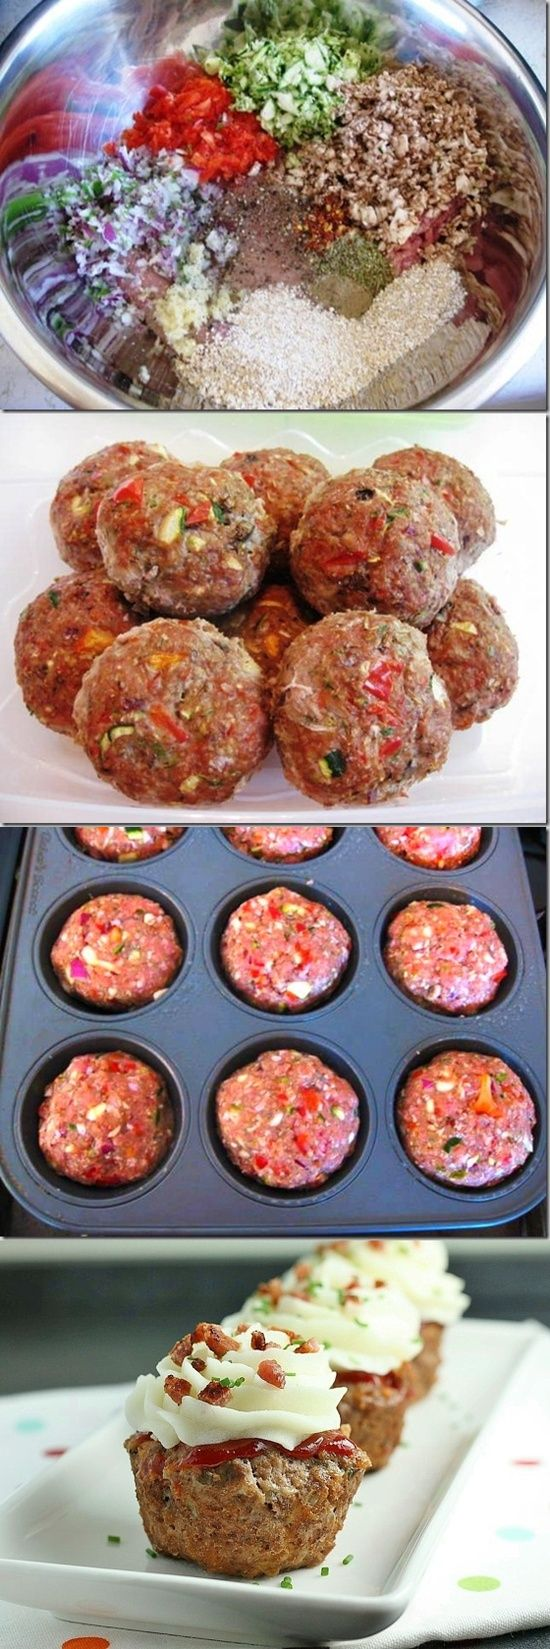 Meatloaf Cupcakes my family would LOVE these!!